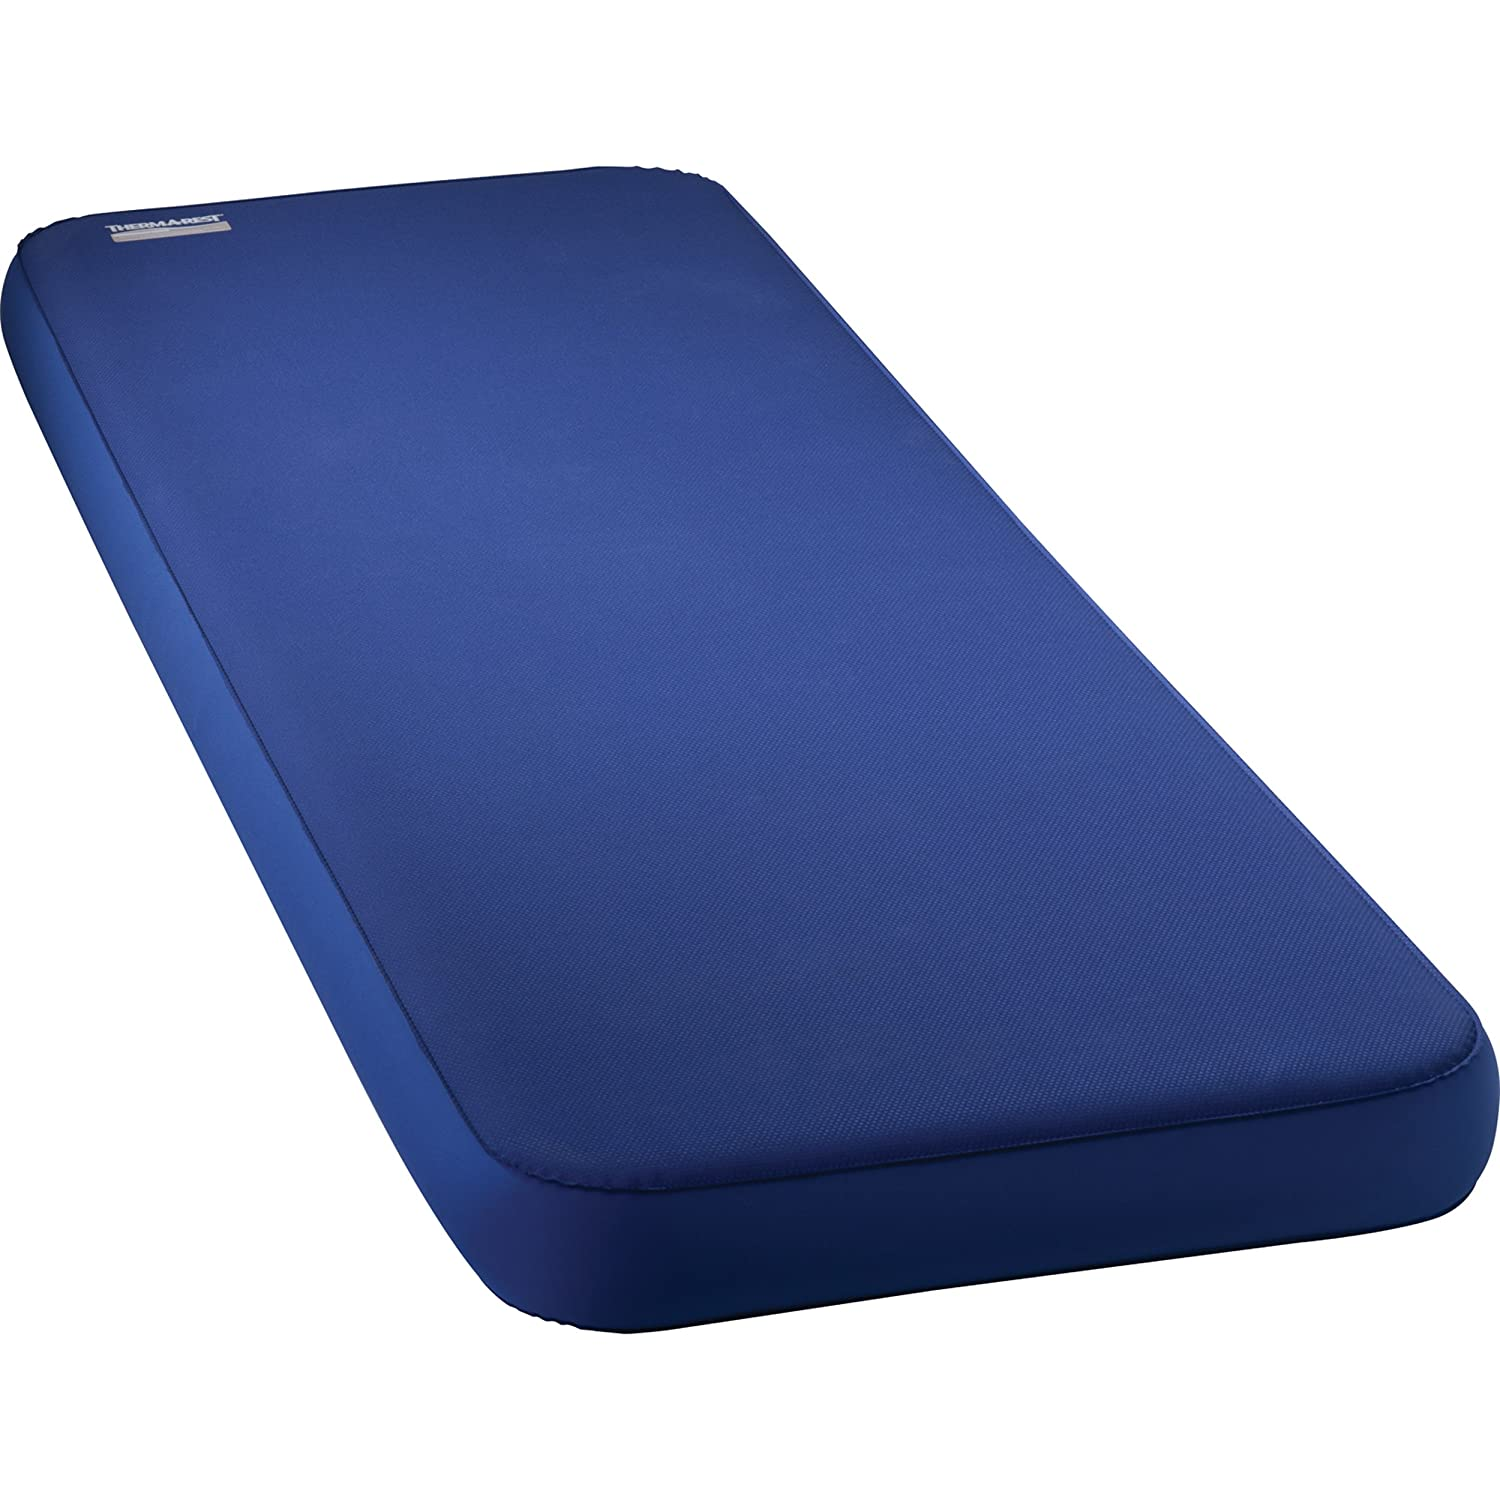 The 5 Best Air Mattresses for Children In 2018: Reviews & Buying Guide 18